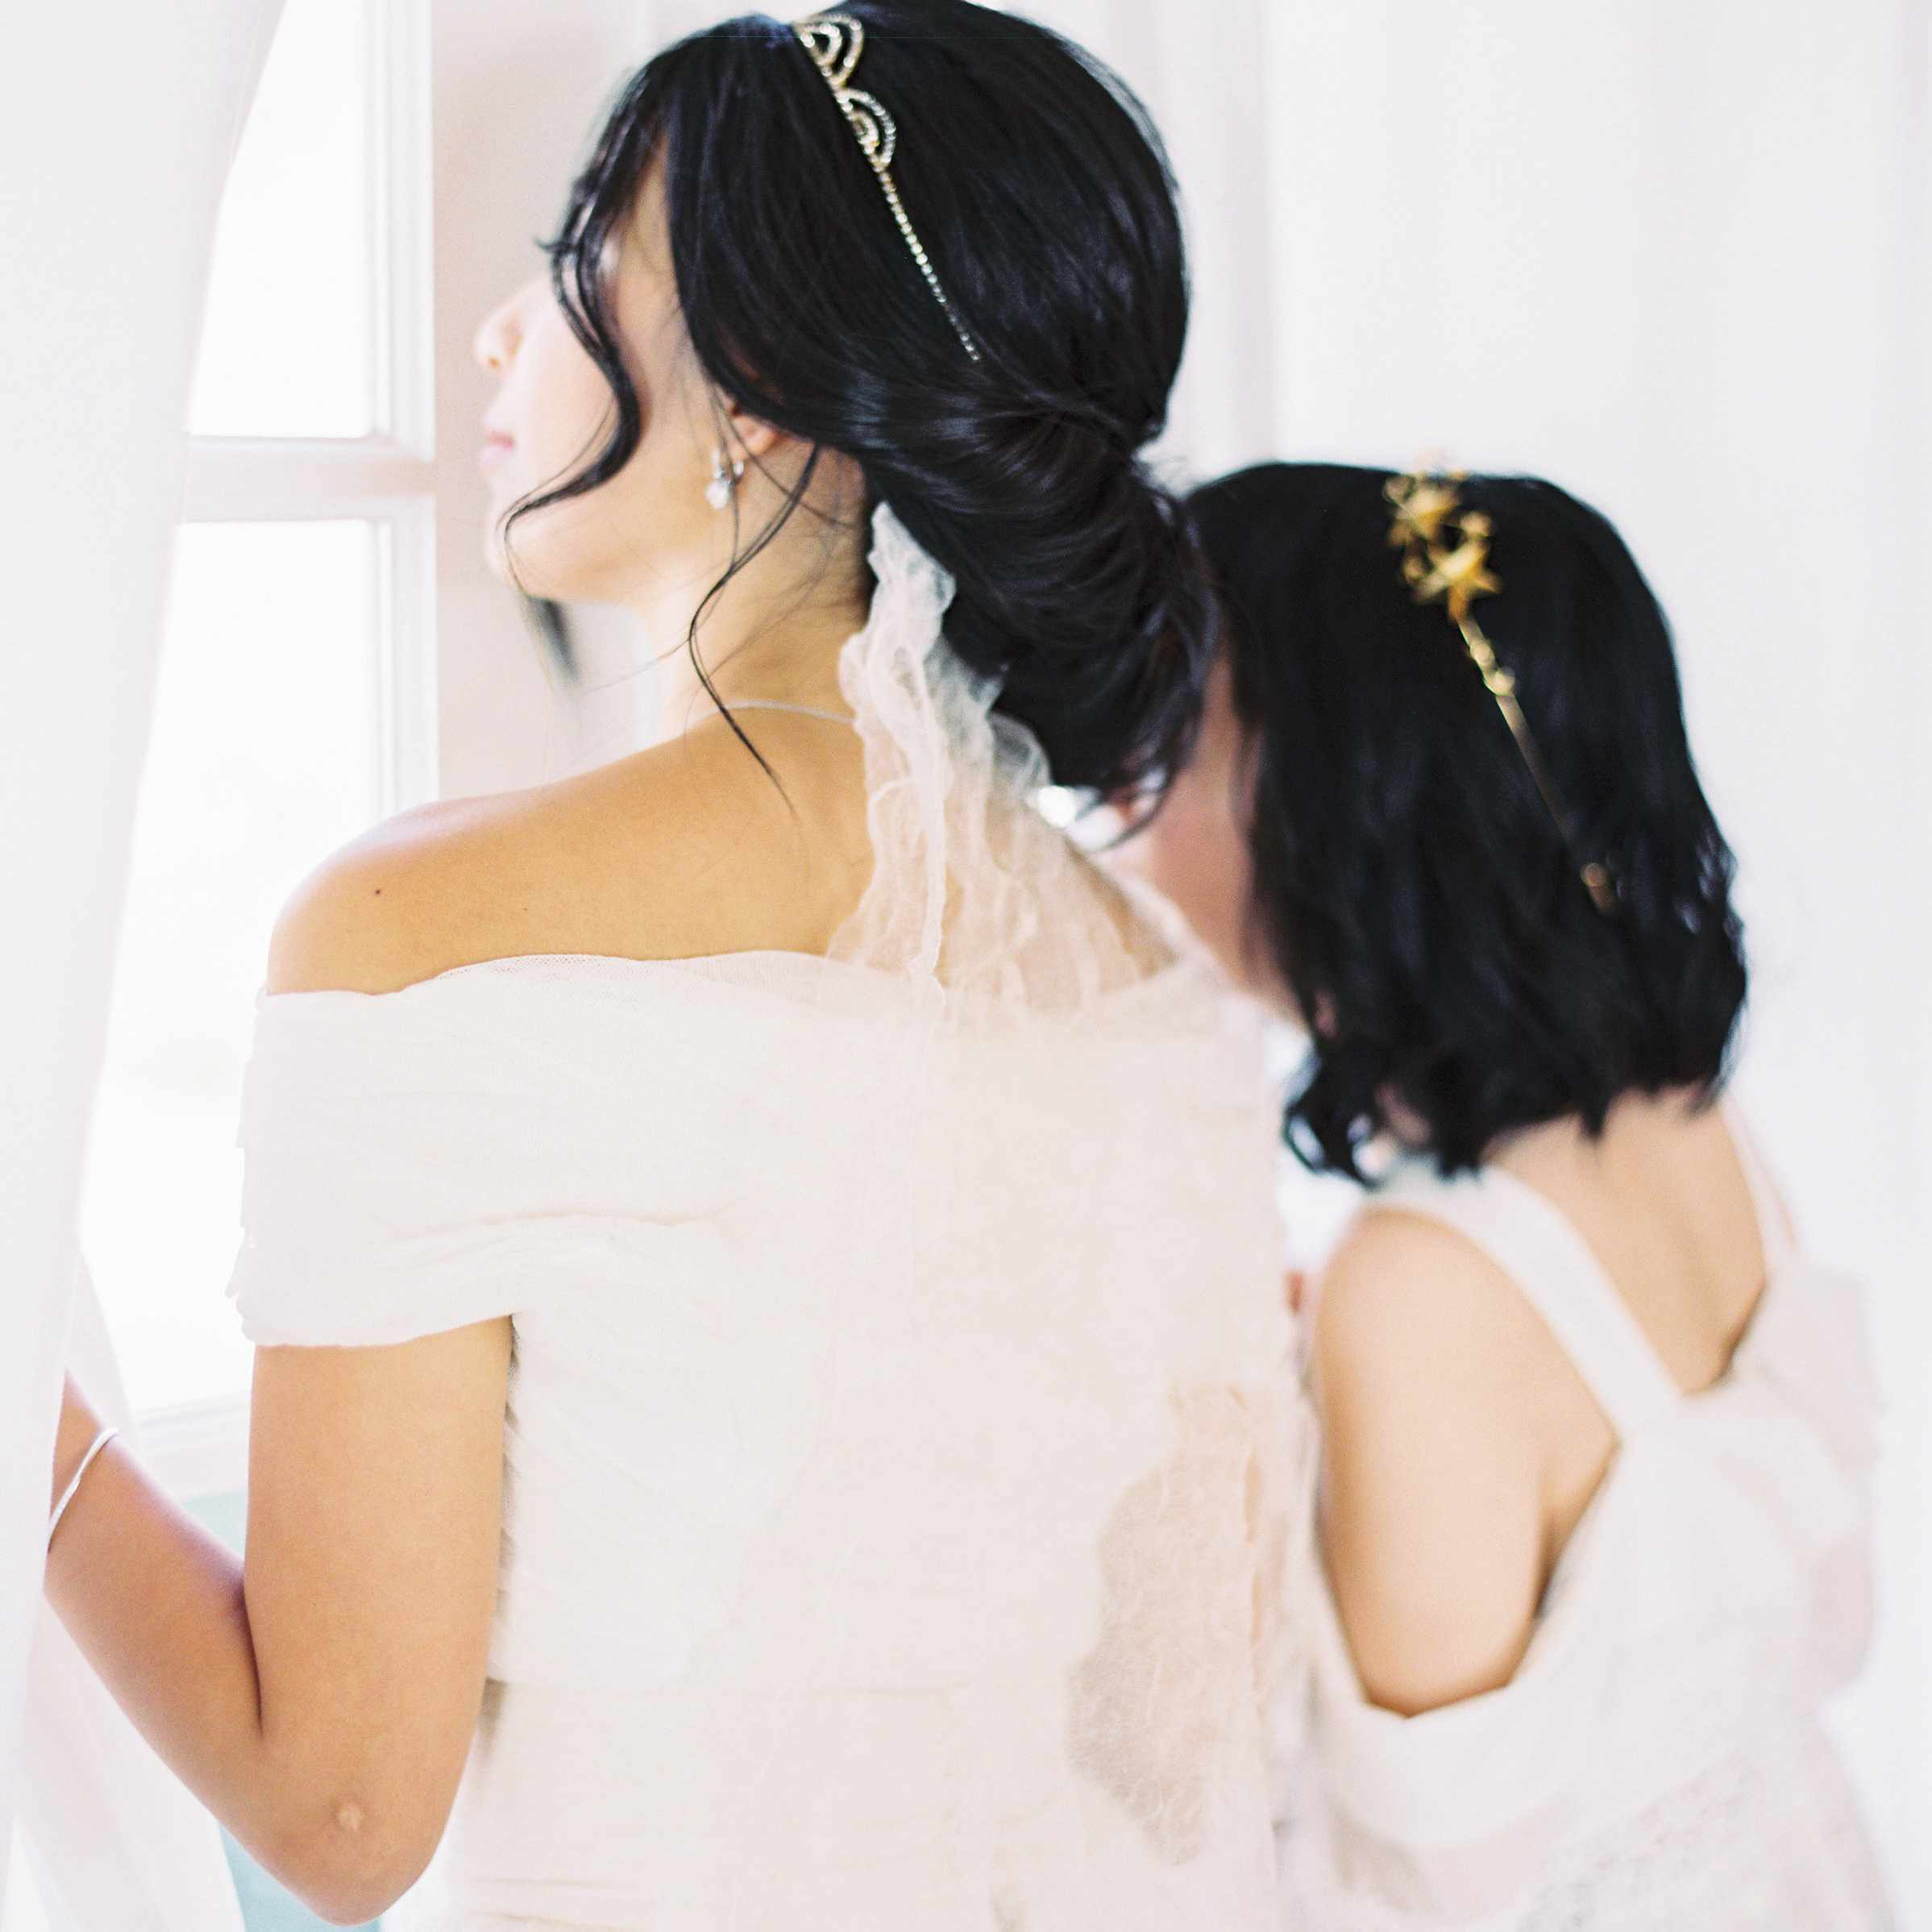 Wedding Hairstyle Ringlets: 27 Wedding Hairstyles That Work Well With Veils